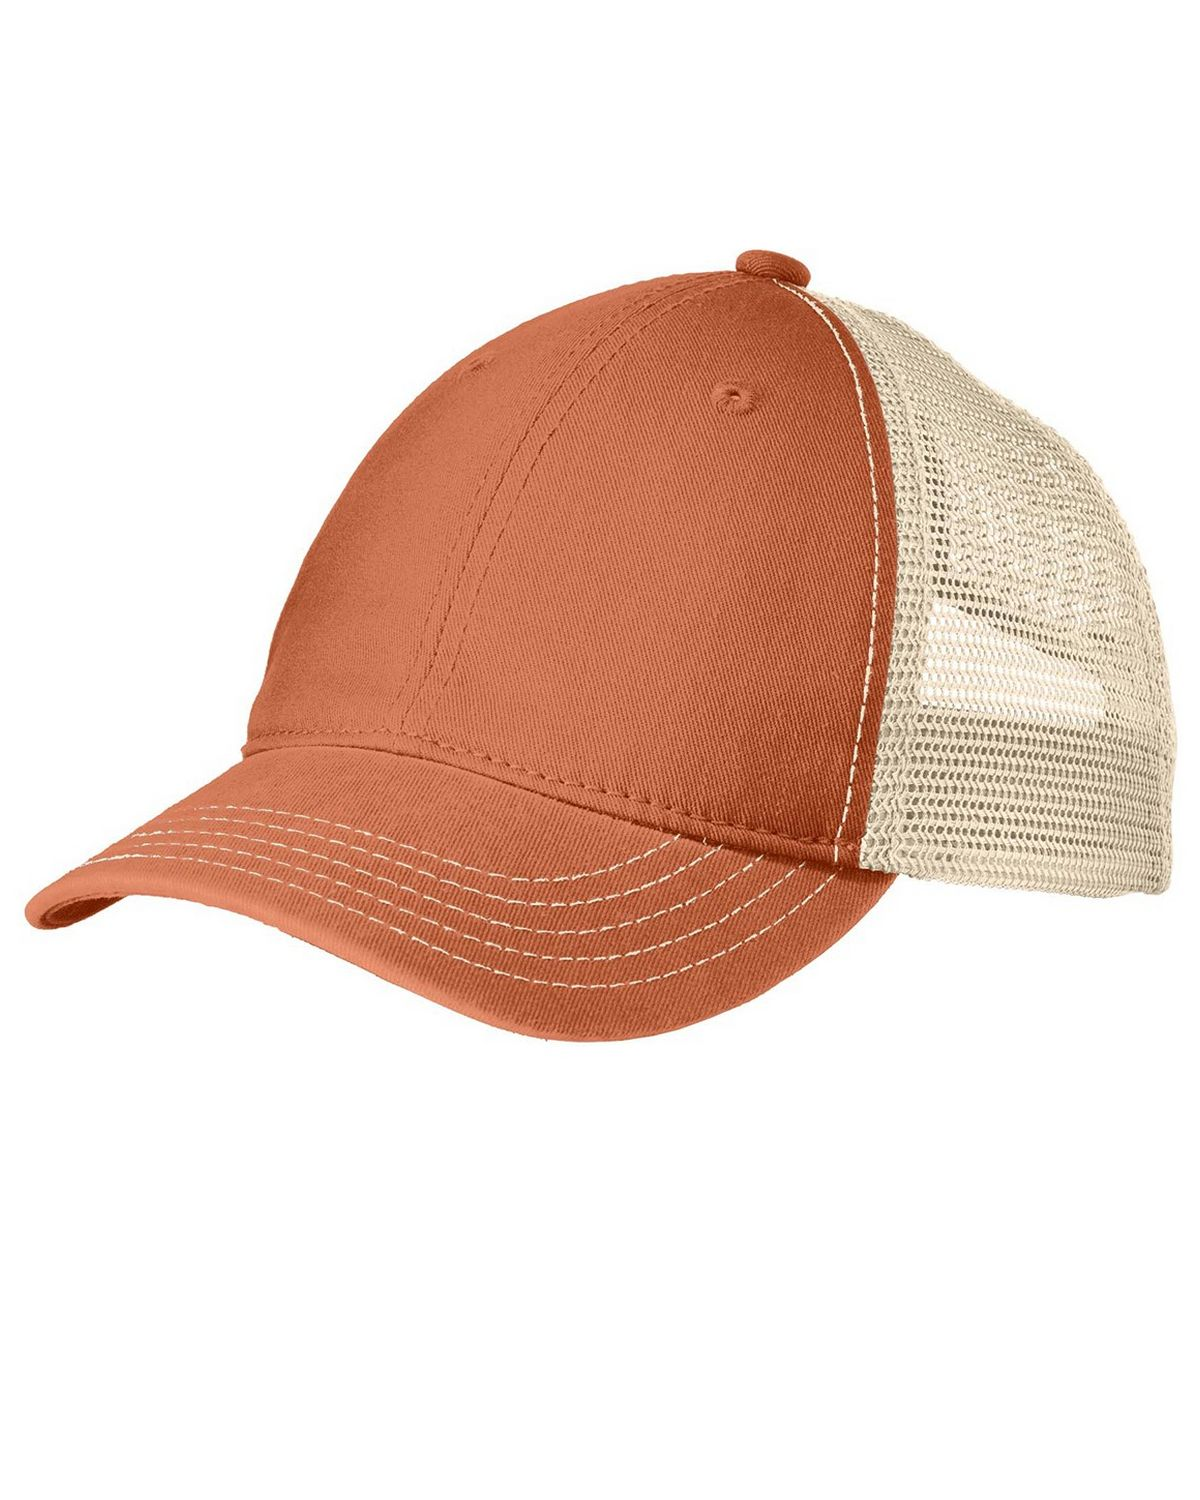 6dd0588d8b58f Buy District DT630 Super Soft Mesh Back Cap